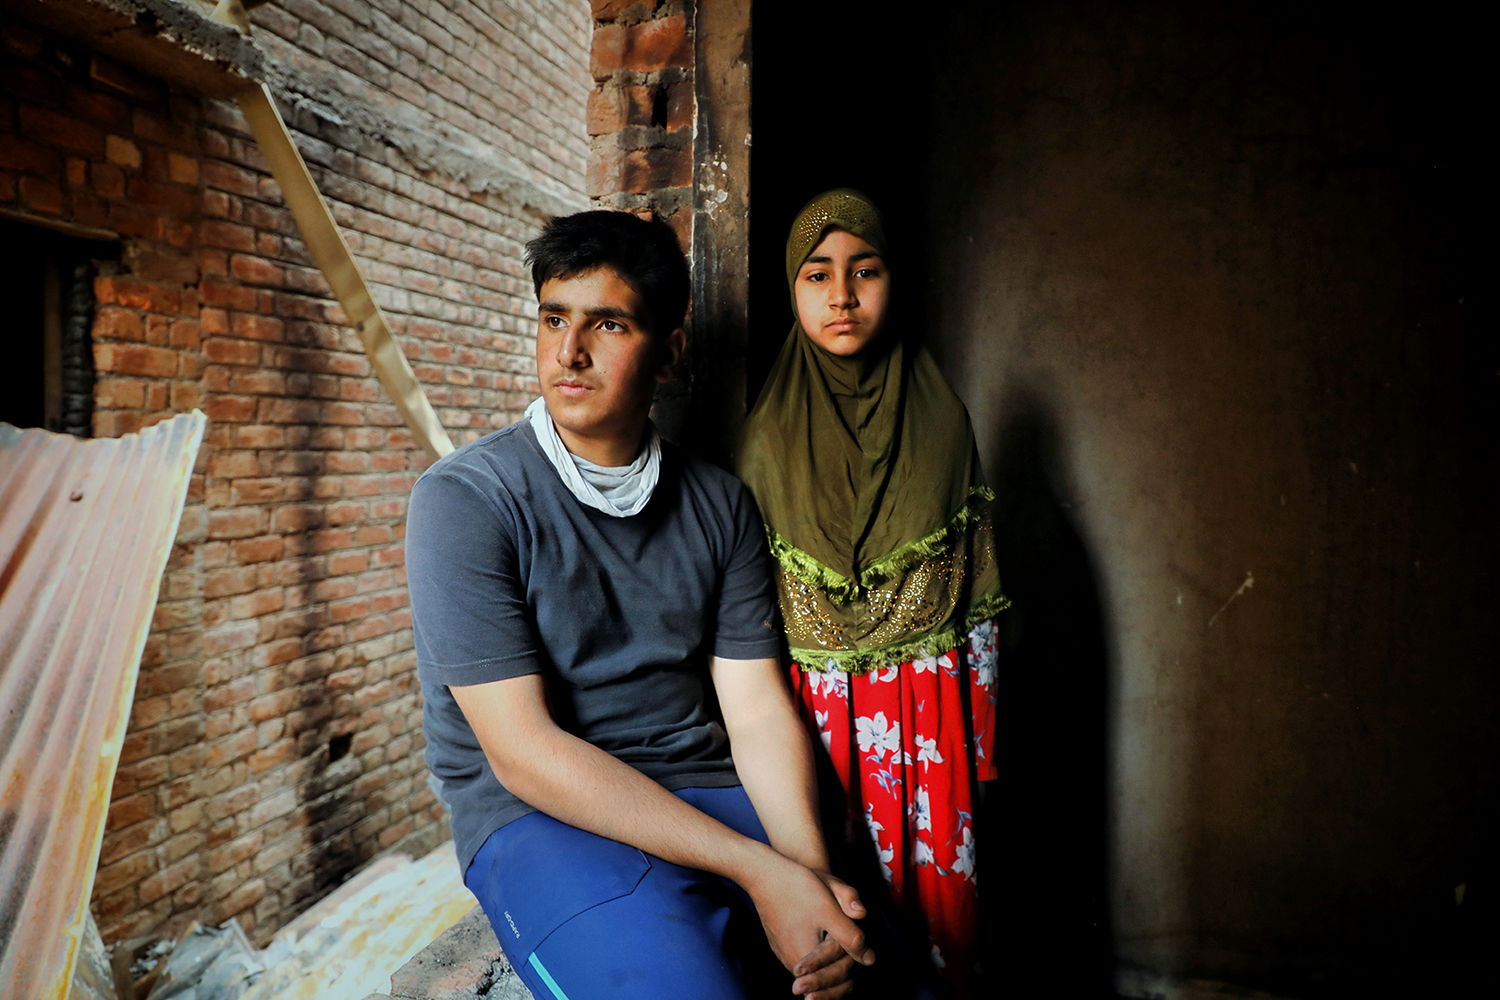 Salik Gandroo and his sister Safoora take a break while sanitizing the remains of their home in Srinagar on May 29.